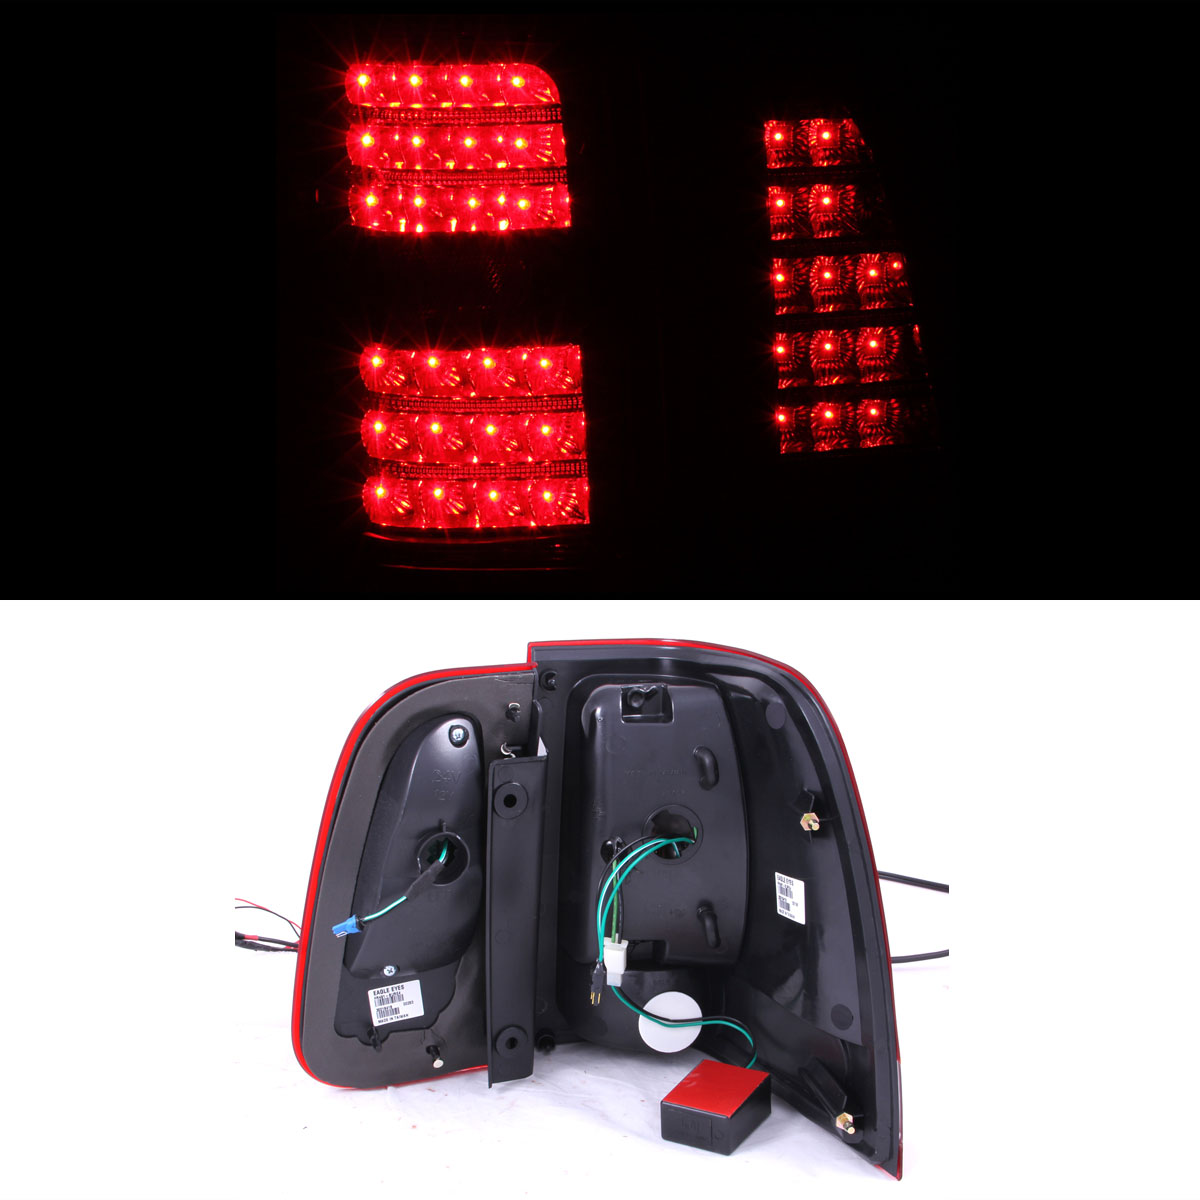 2006 Acura Tl Tail Lights For Sale: For 2003 2004 2005 2006 Lincoln Navigator Black LED Clear